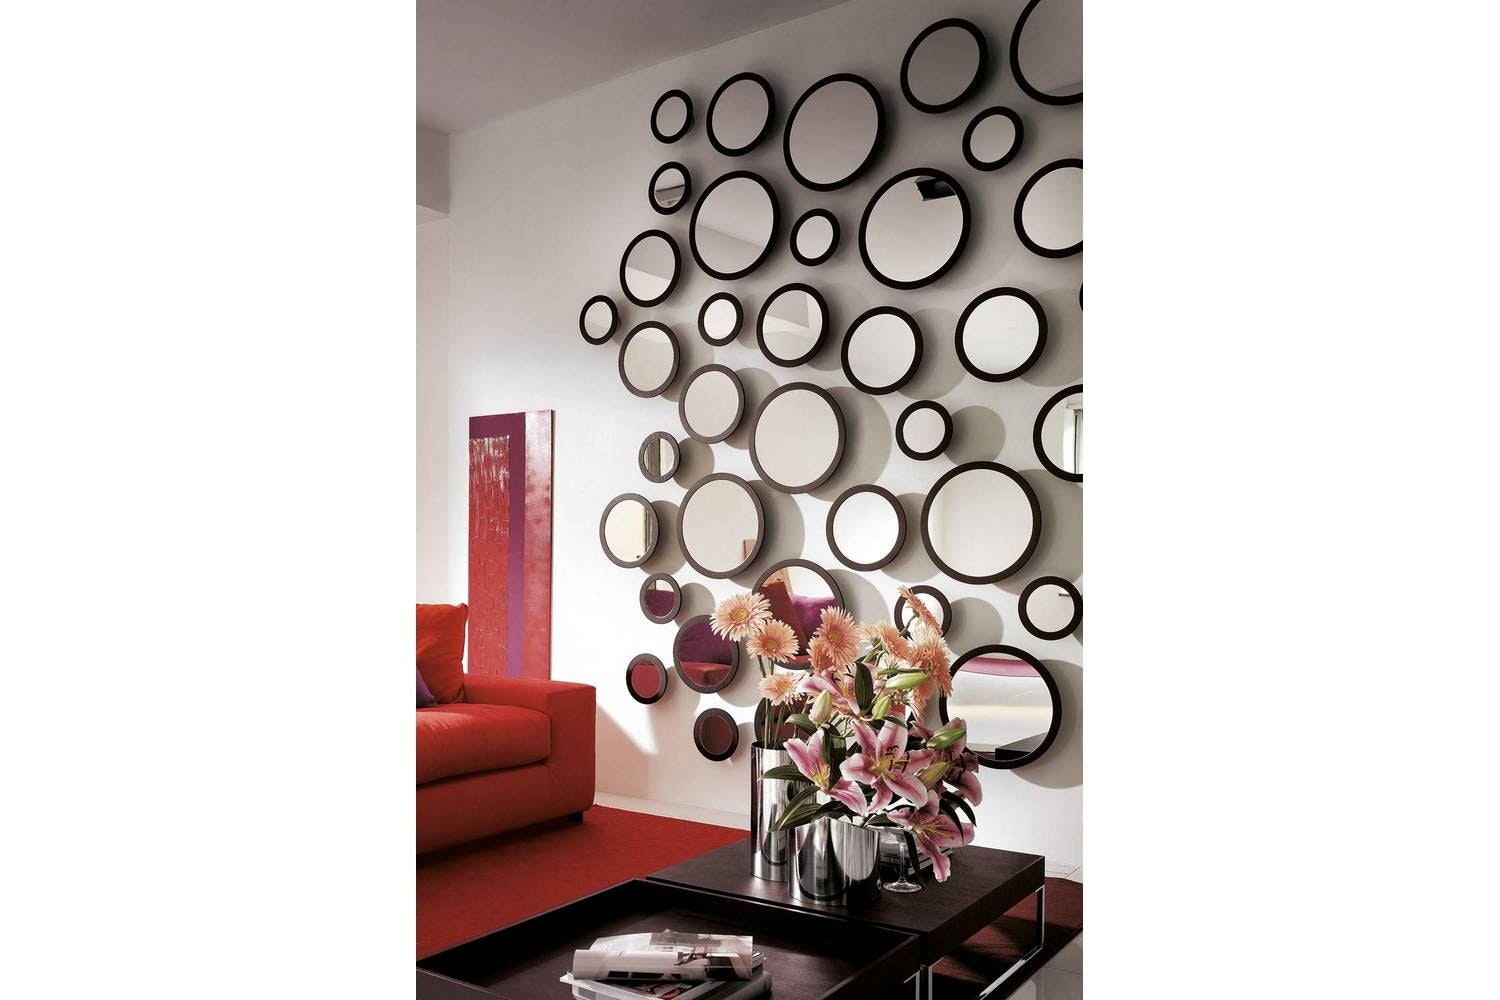 Stars Mirror by T. Colzani for Porada